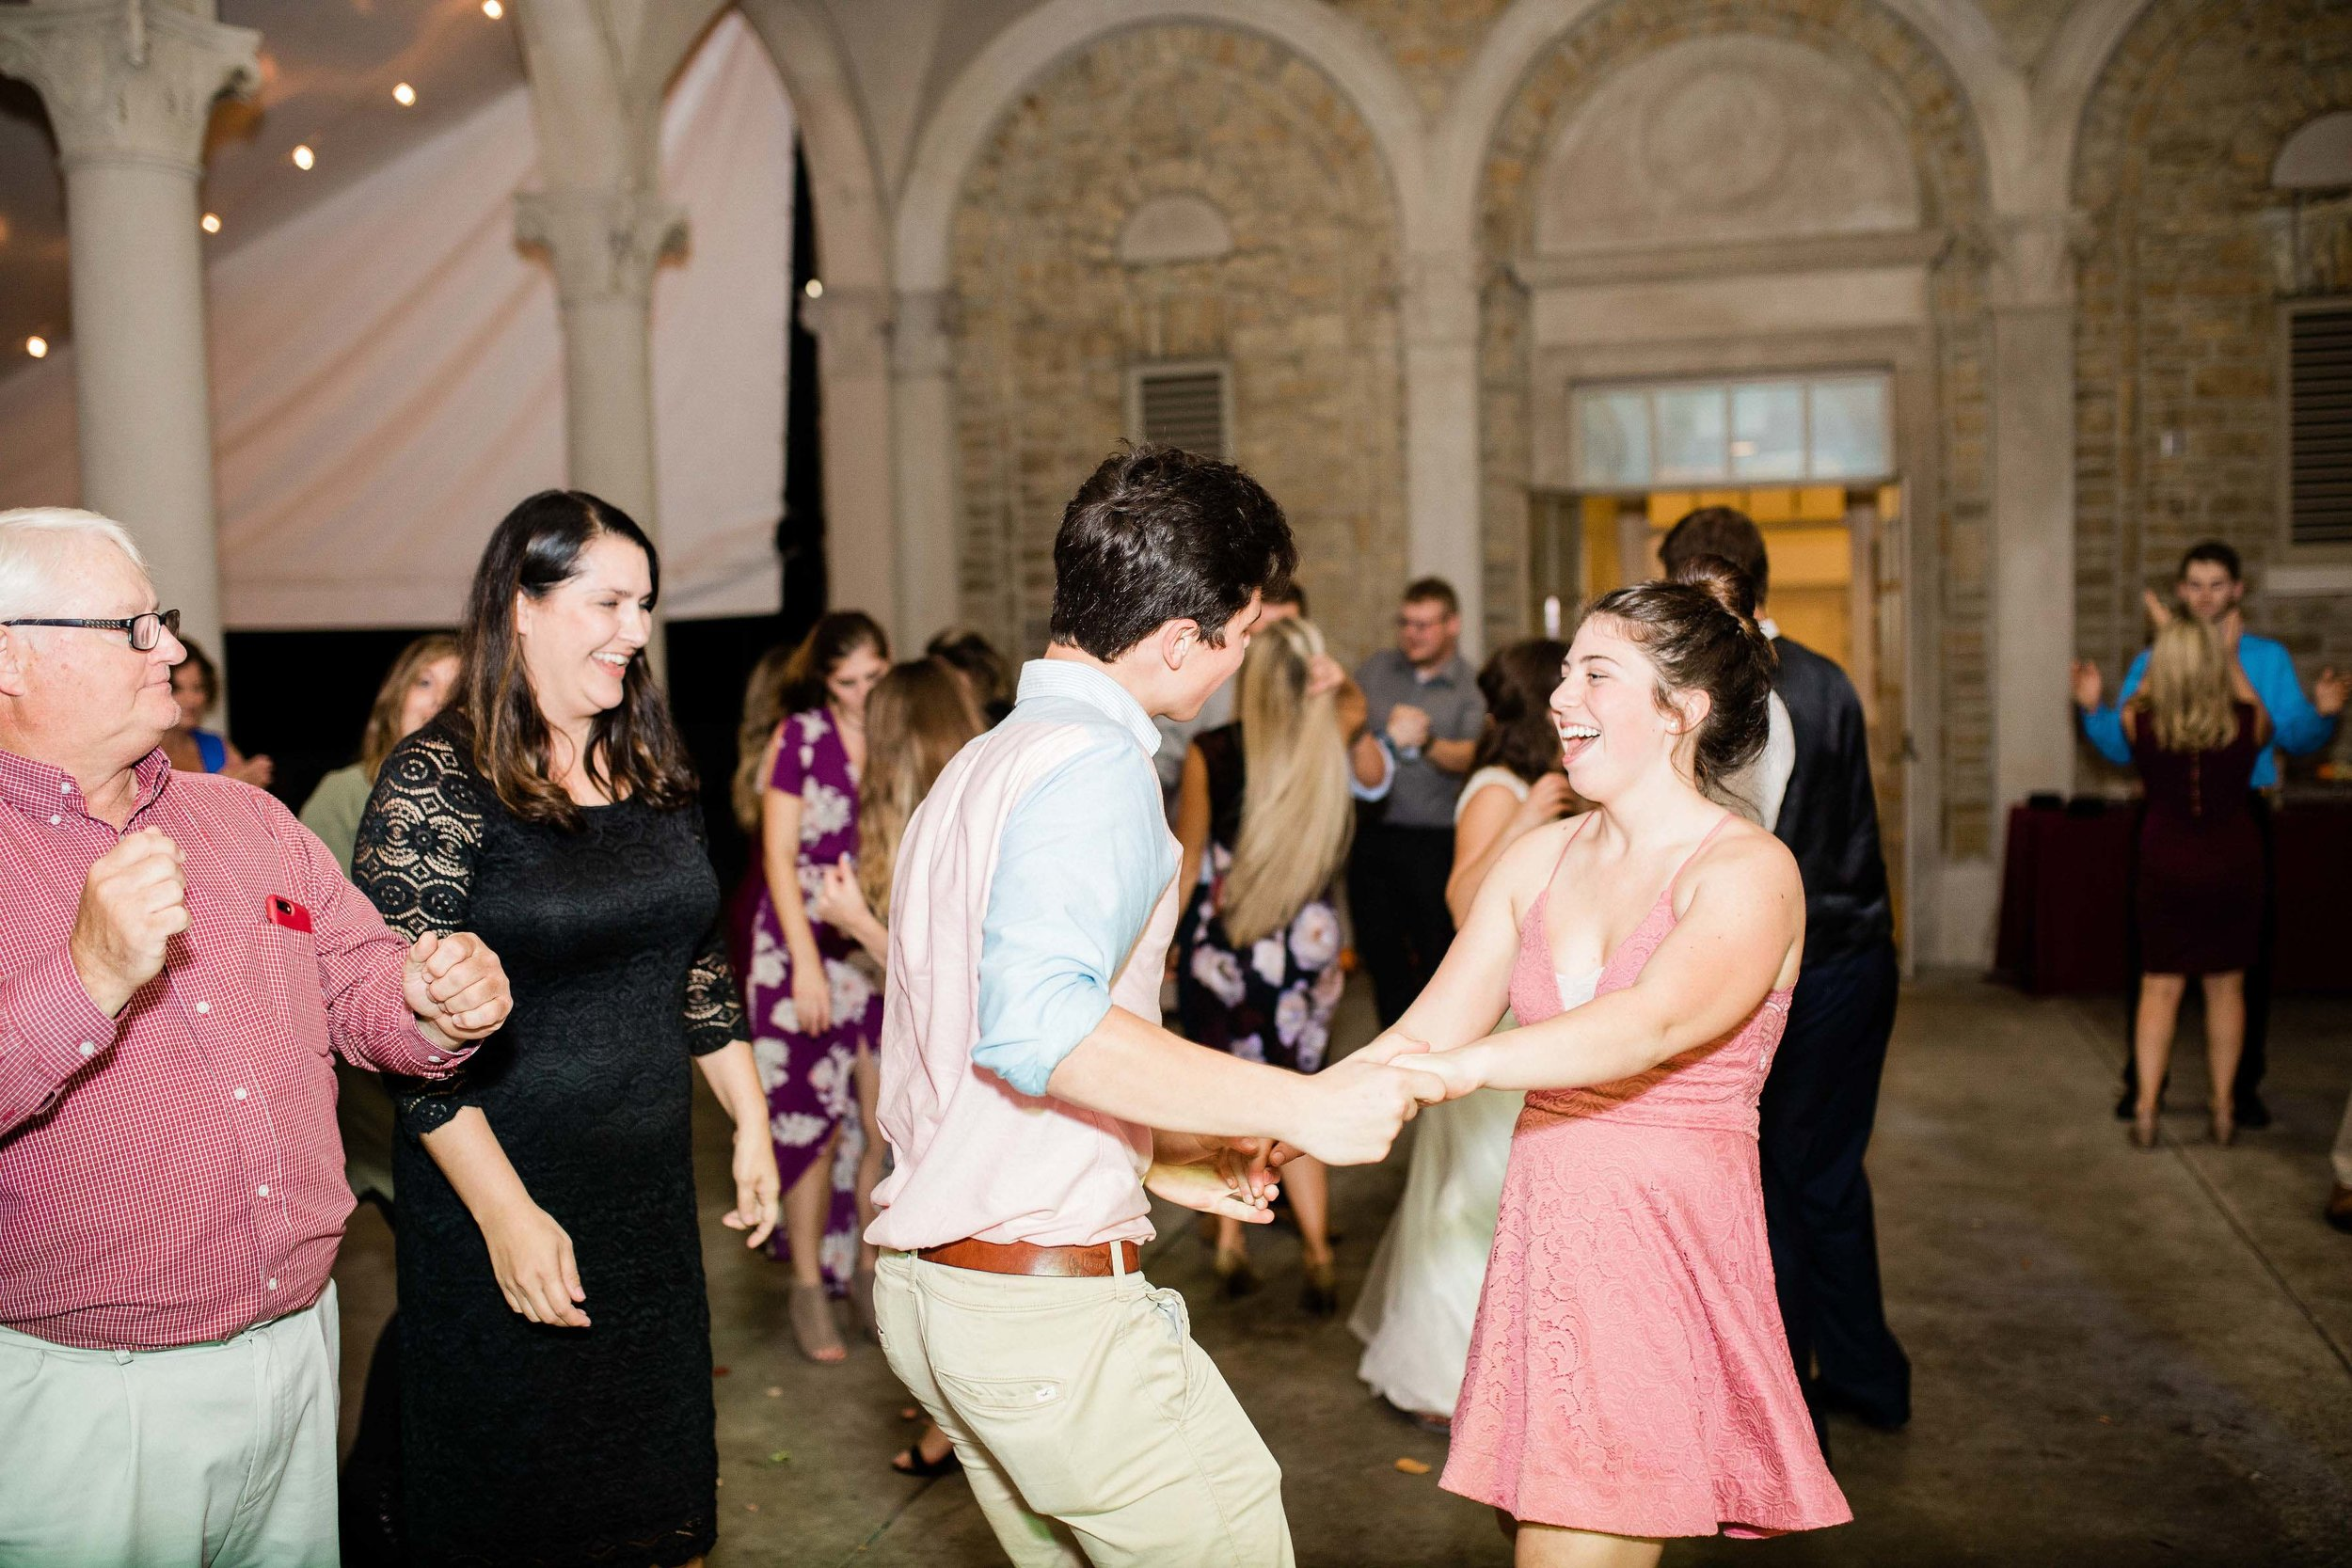 dancing pictures wedding reception cincinnati ohio-8.jpg